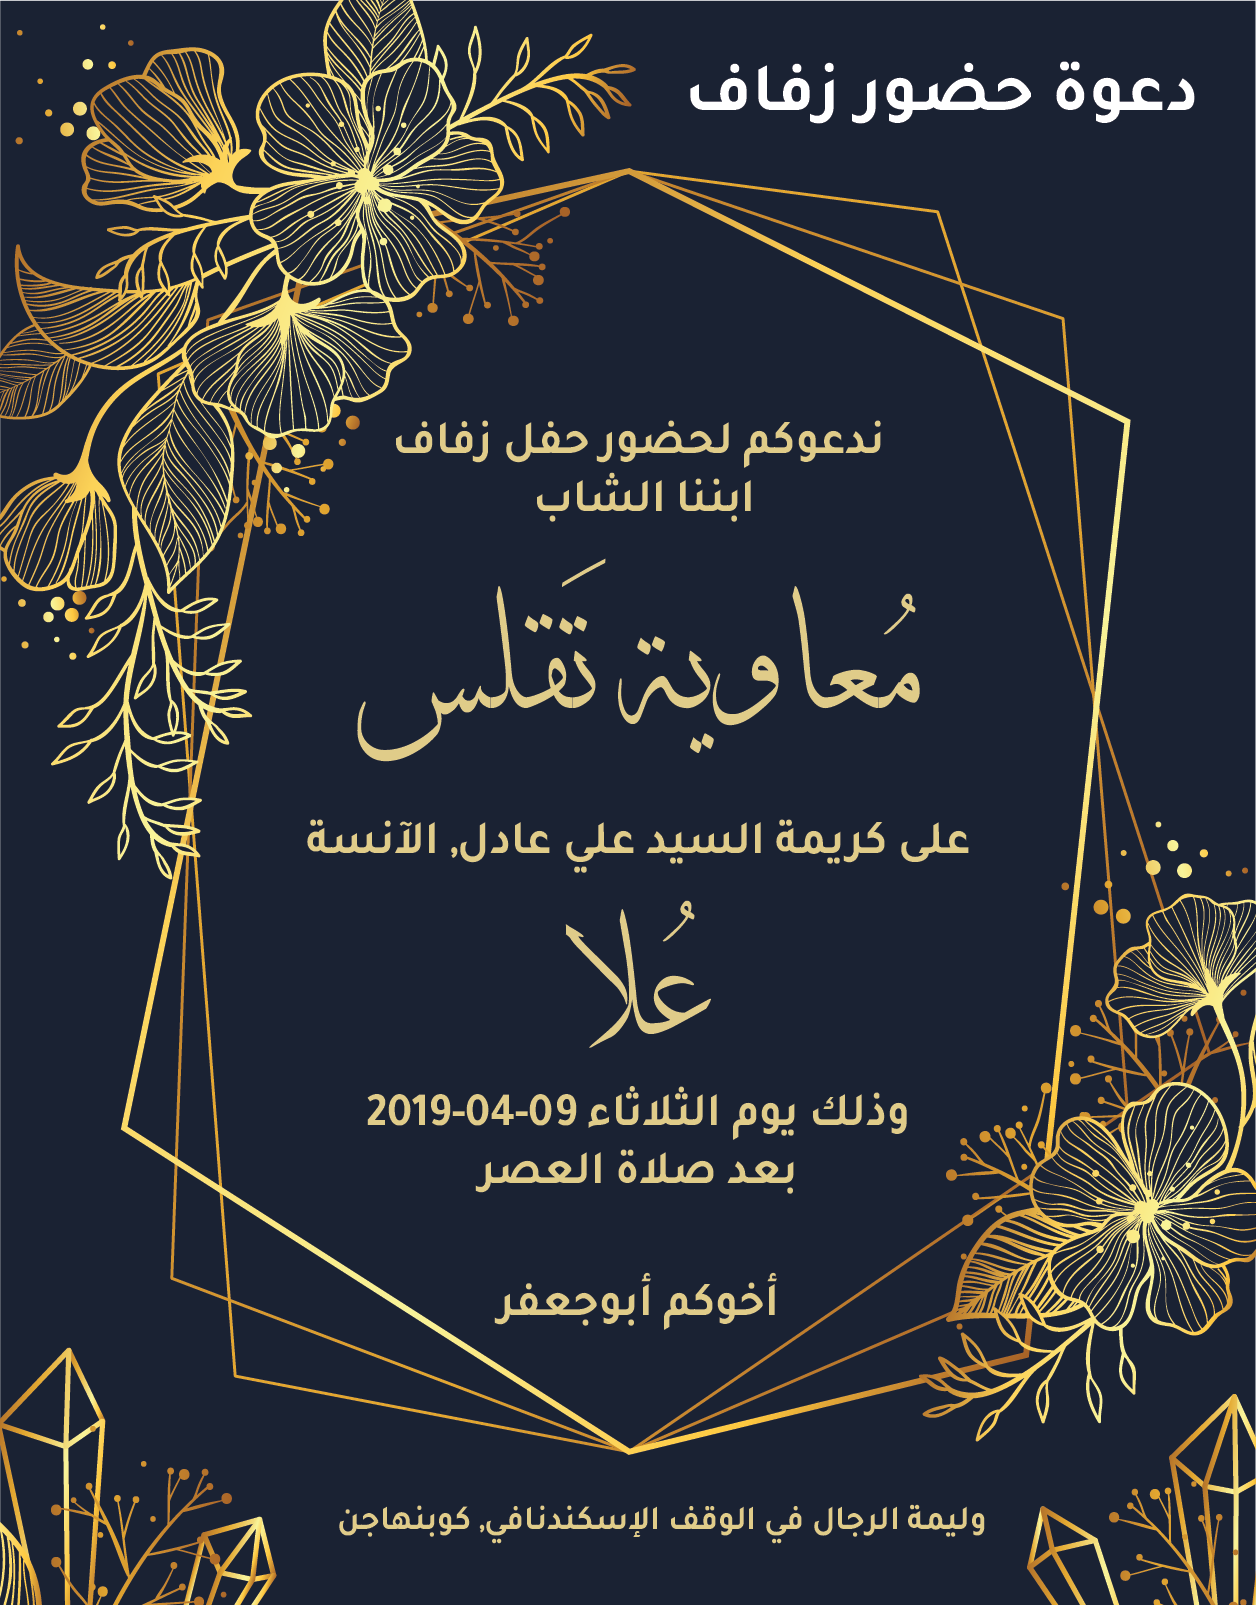 دعوة فرح زفاف بوستر عرس تصميم بوسترات Digital Wedding Invitations Design Digital Wedding Invitations Invitation Design